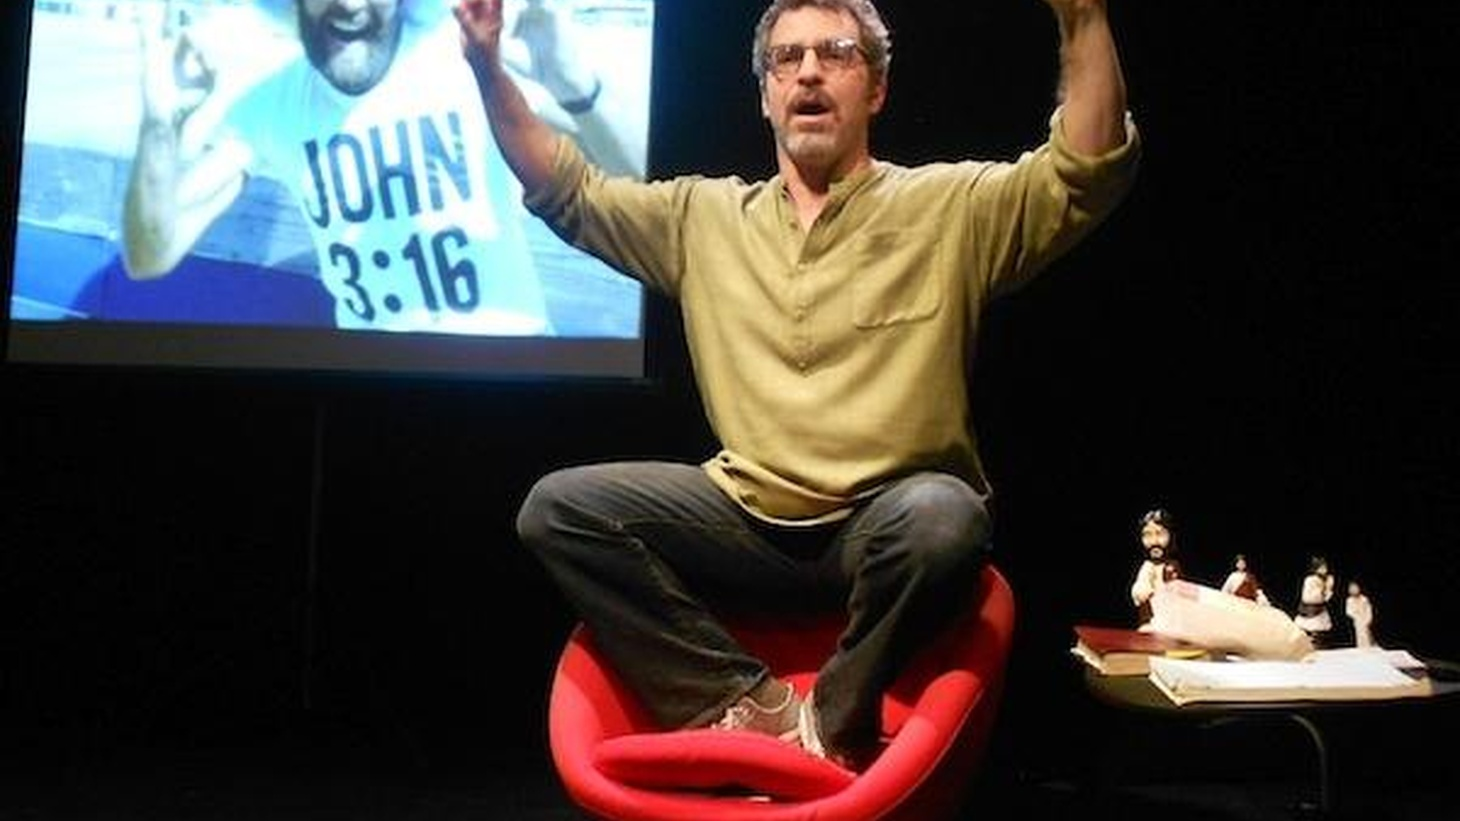 """Anthony Byrnes on Mike Schlitt's Jesus Ride, which he says plays """"like a great dinner party story that just happens to have video all cued up."""""""